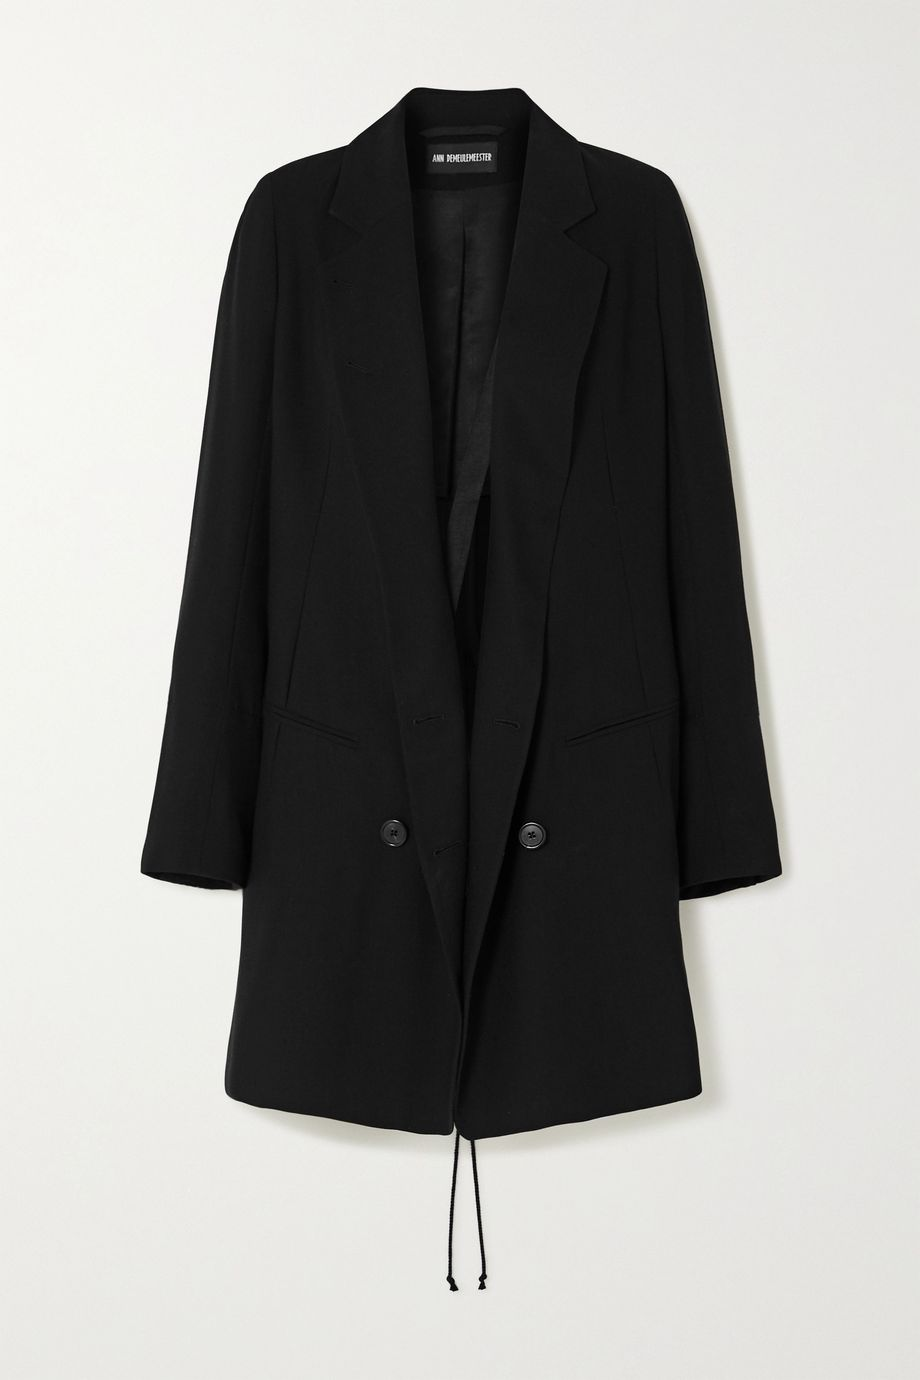 Ann Demeulemeester Double-breasted lace-up wool-twill blazer